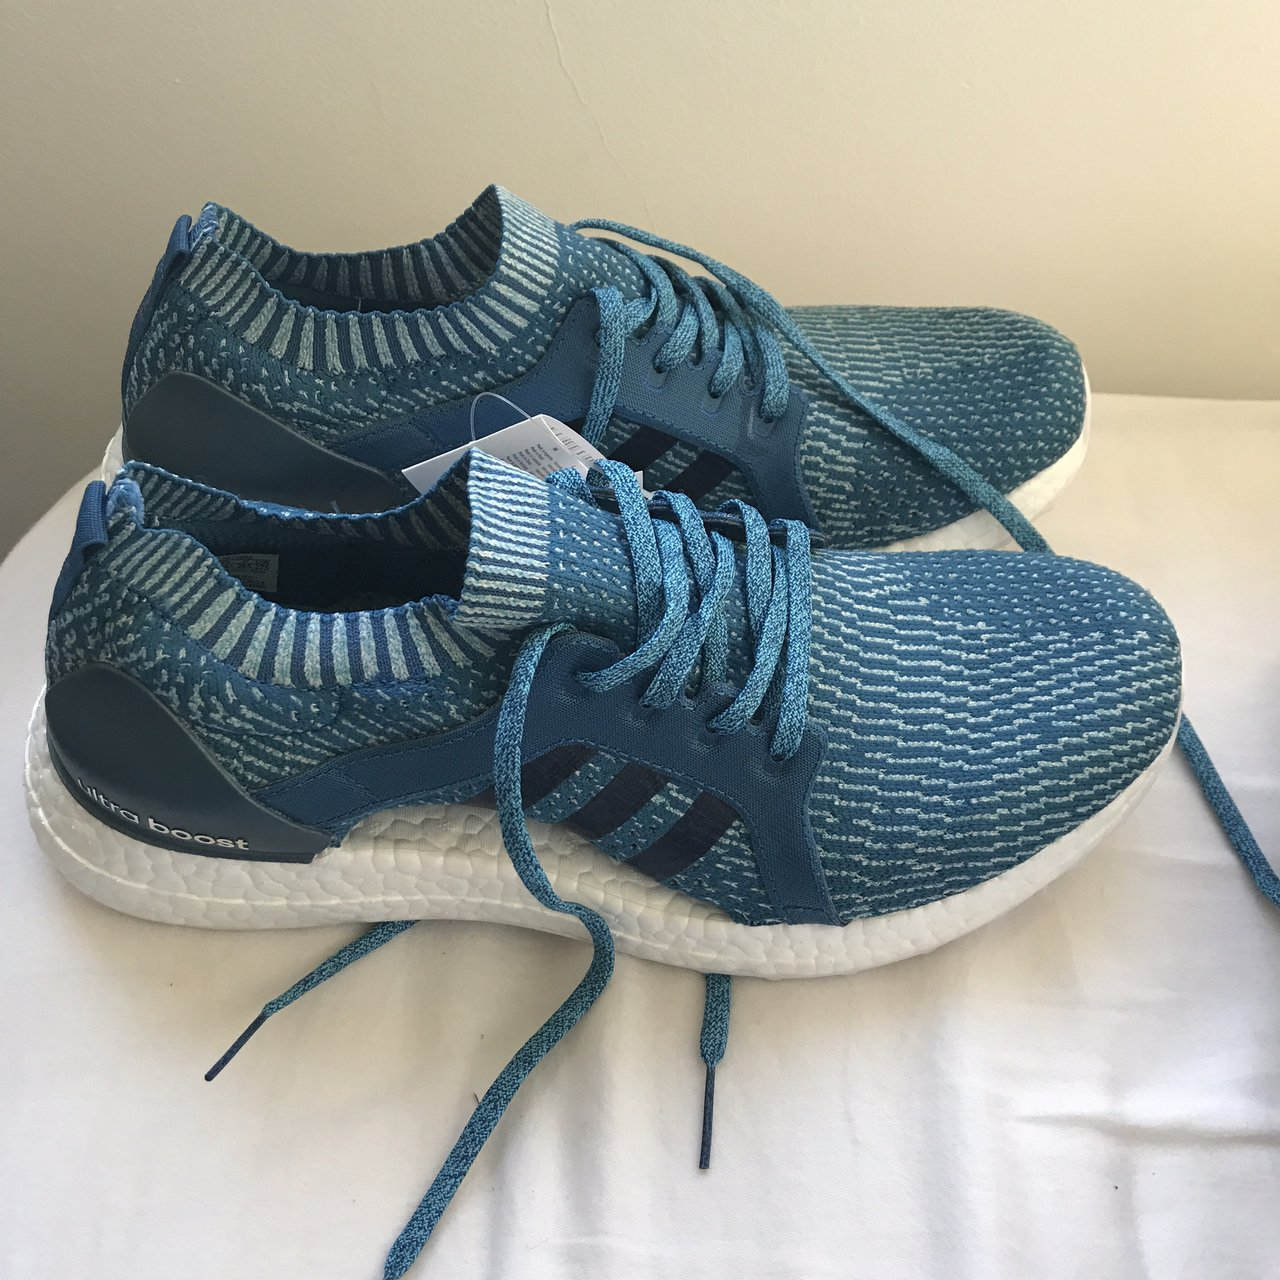 0e56c4839860c Addidas x Parley Ultra boost x brand new with tags and box 9 - Depop